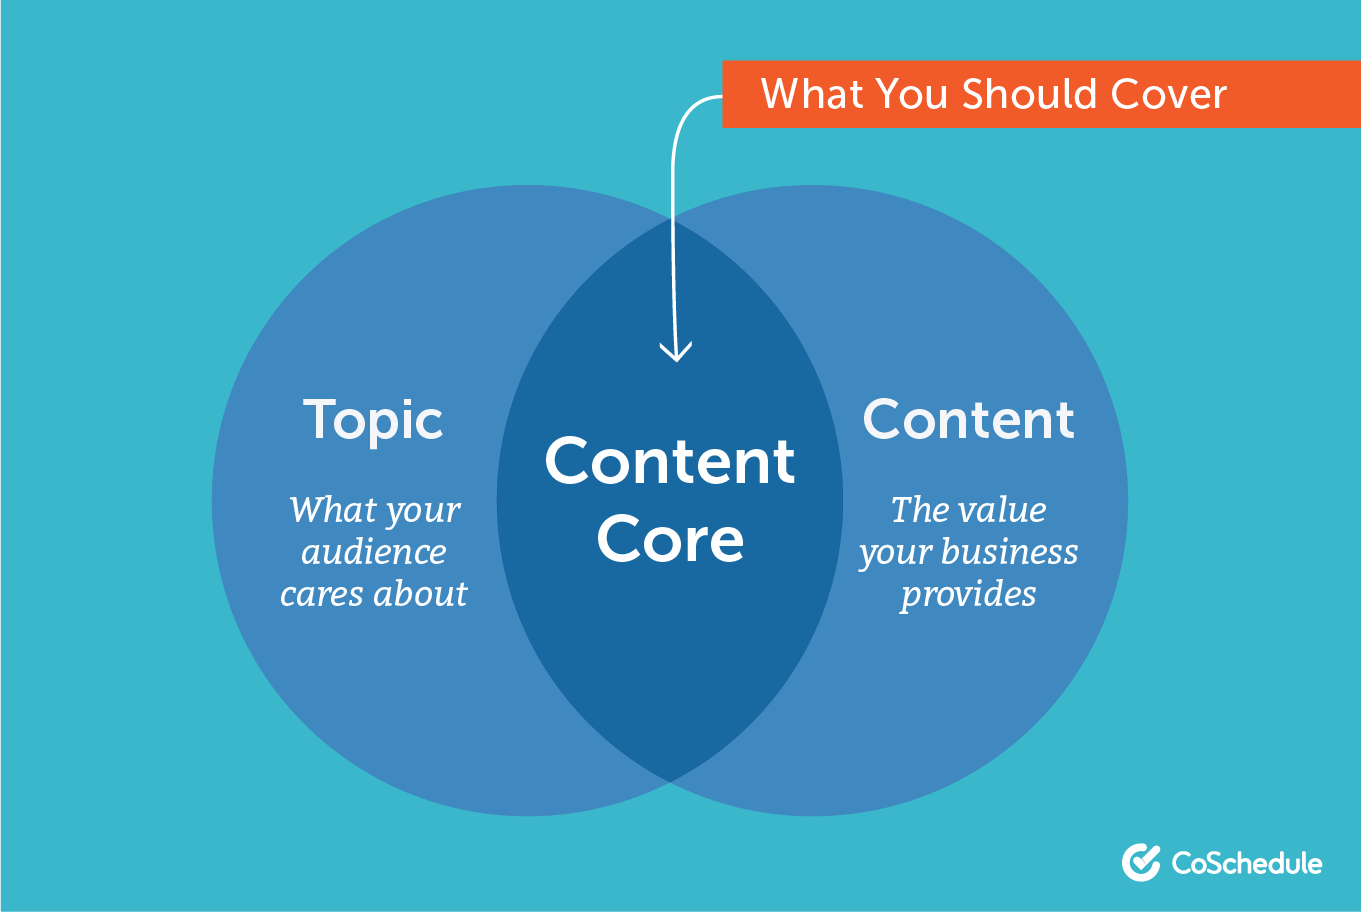 What to cover in your content core.